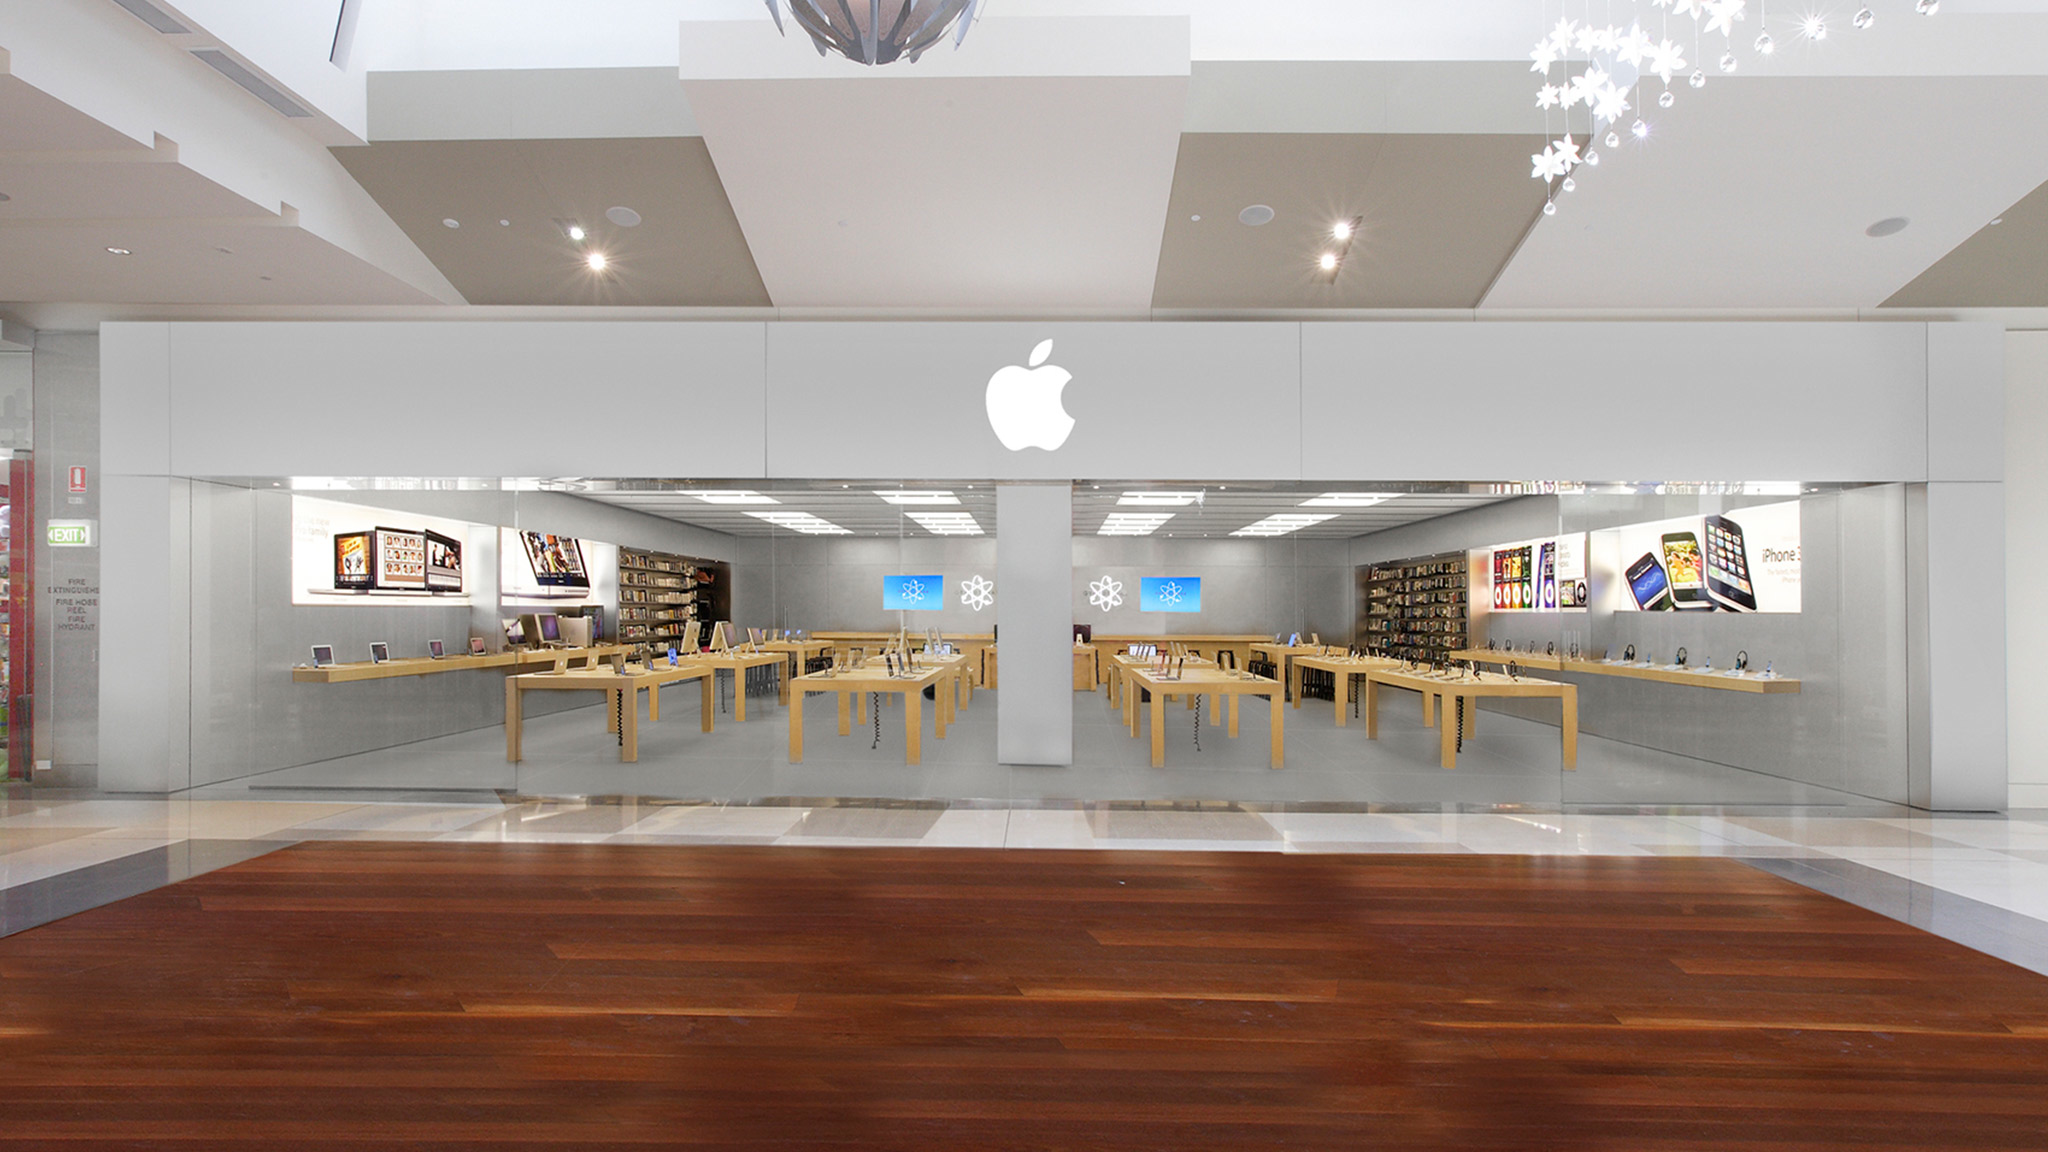 Apple Chermside - Chermside, QLD 4032 - (07) 3115 0800 | ShowMeLocal.com